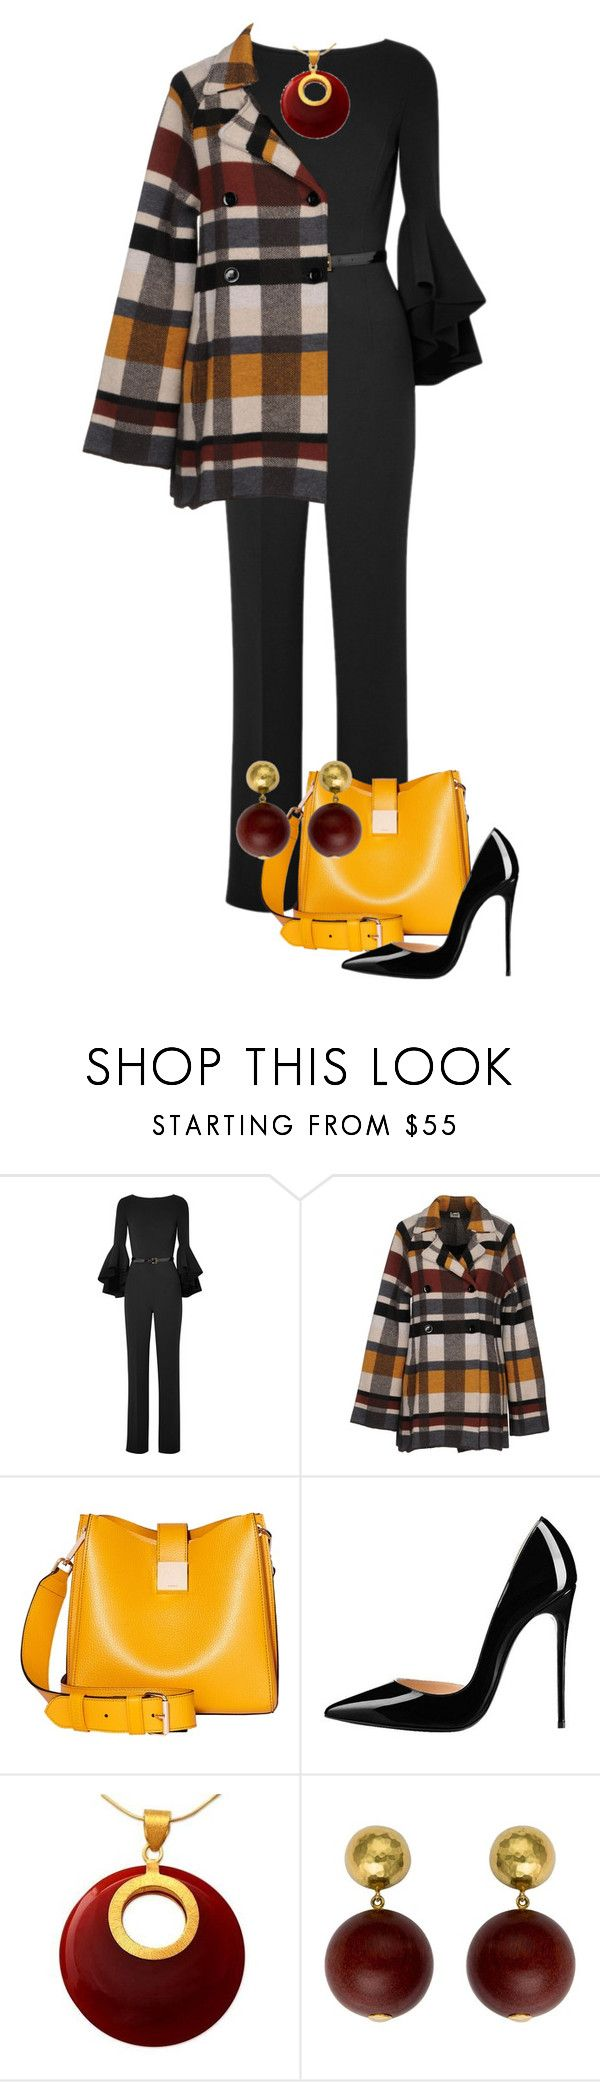 """""""Outfit Only Jumpsuit"""" by shamrockclover ❤ liked on Polyvore featuring Michael Kors, SIYU, Modalu, NOVICA, Tiffany & Co. and jumpsuits"""